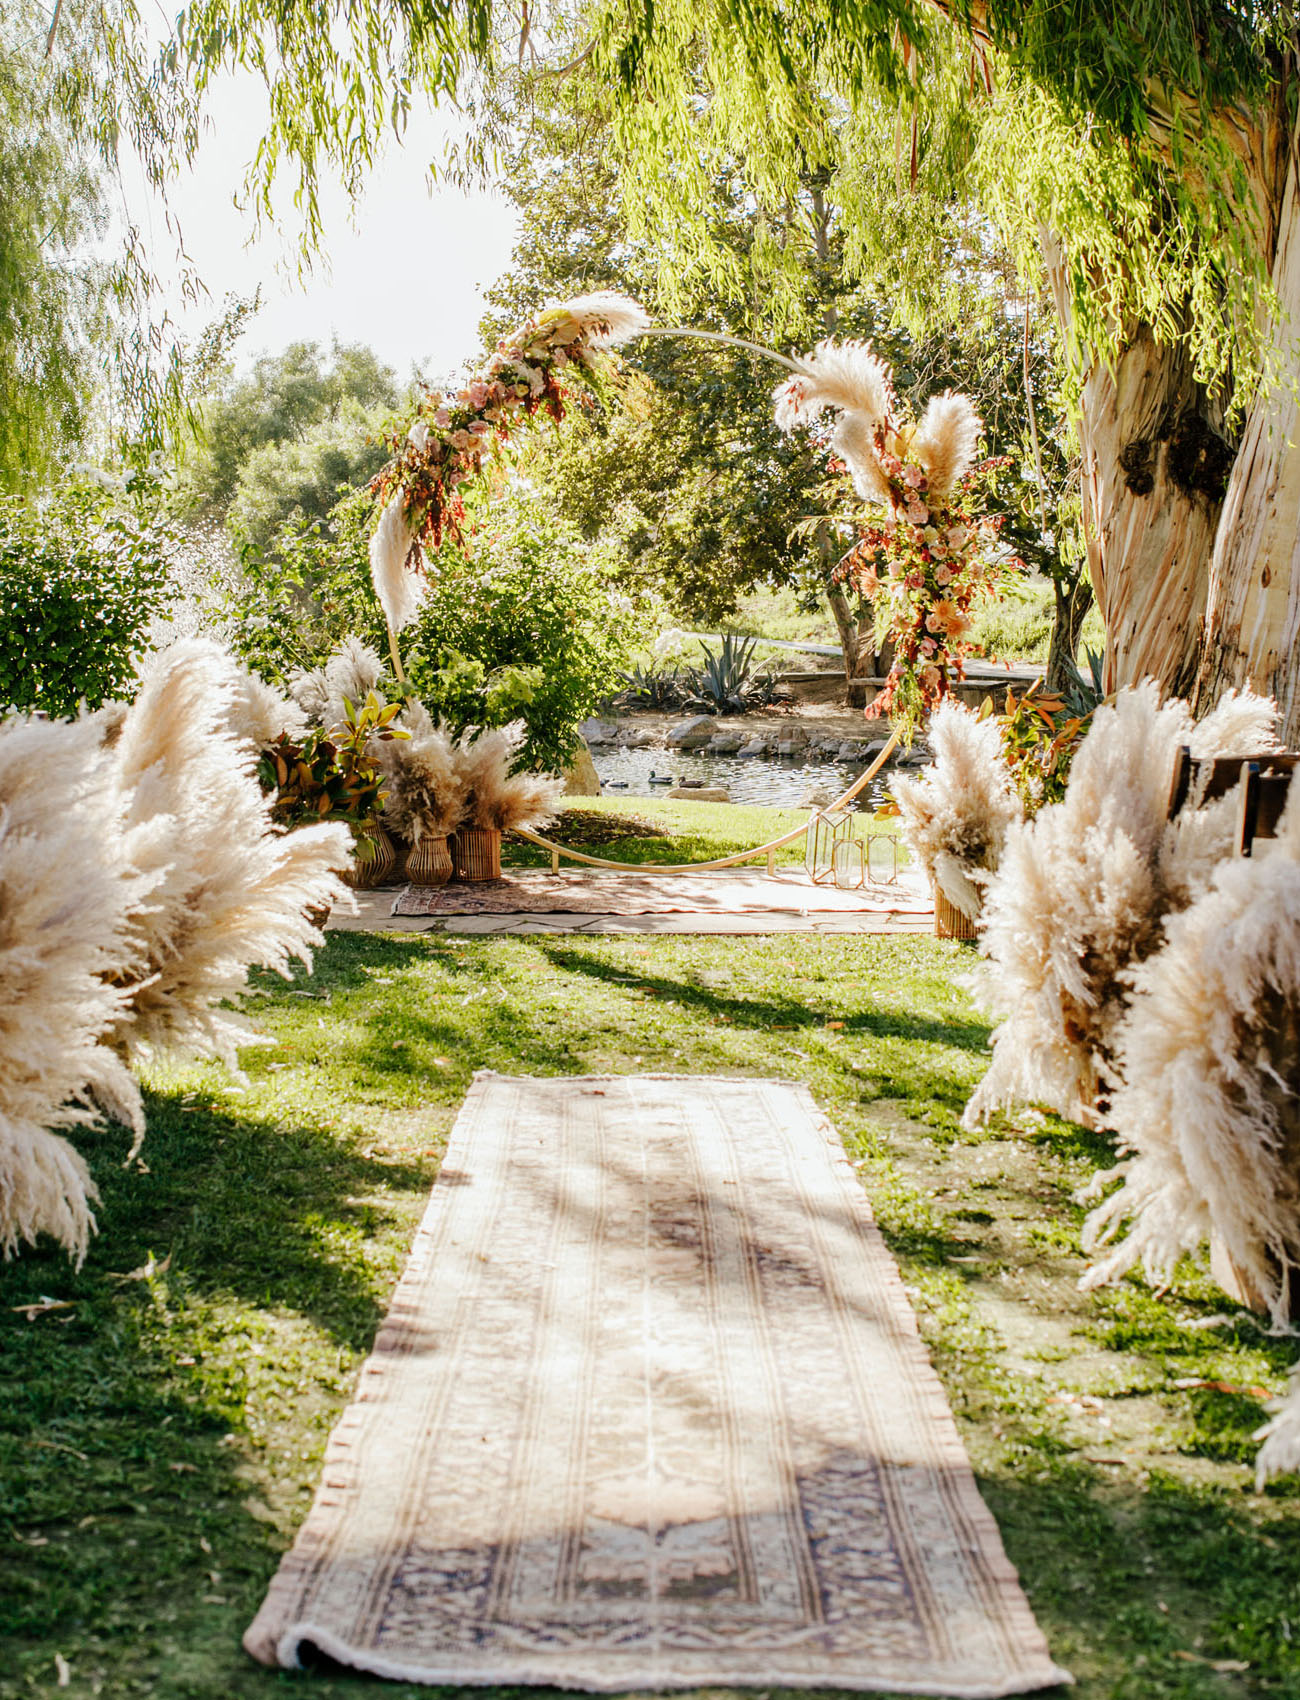 The wedding ceremony space was done with boho rugs, lots of pampas grass and a round arch with lush blooms and pampas grass